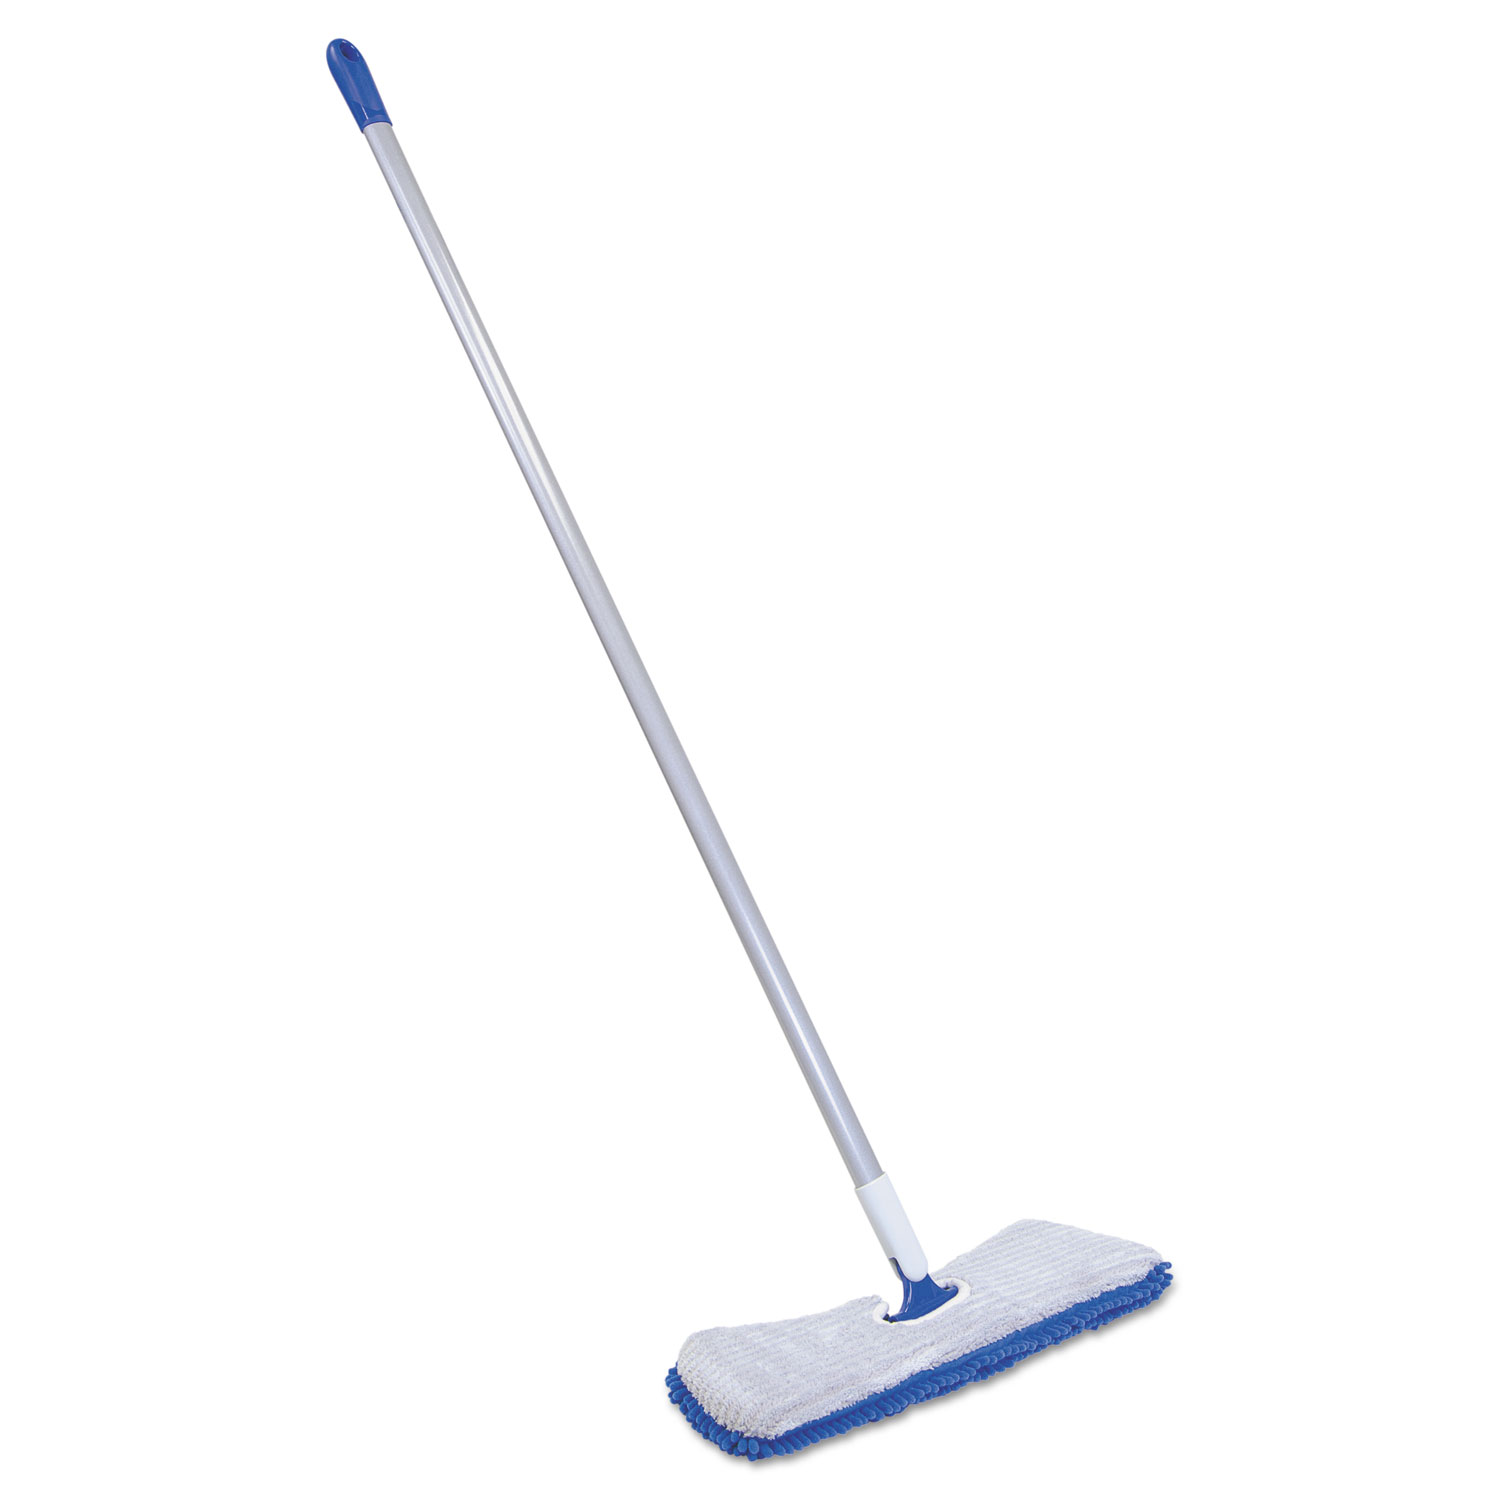 remarkable wet duster use mops cleaning with floor dry mop static on amazon wipes or